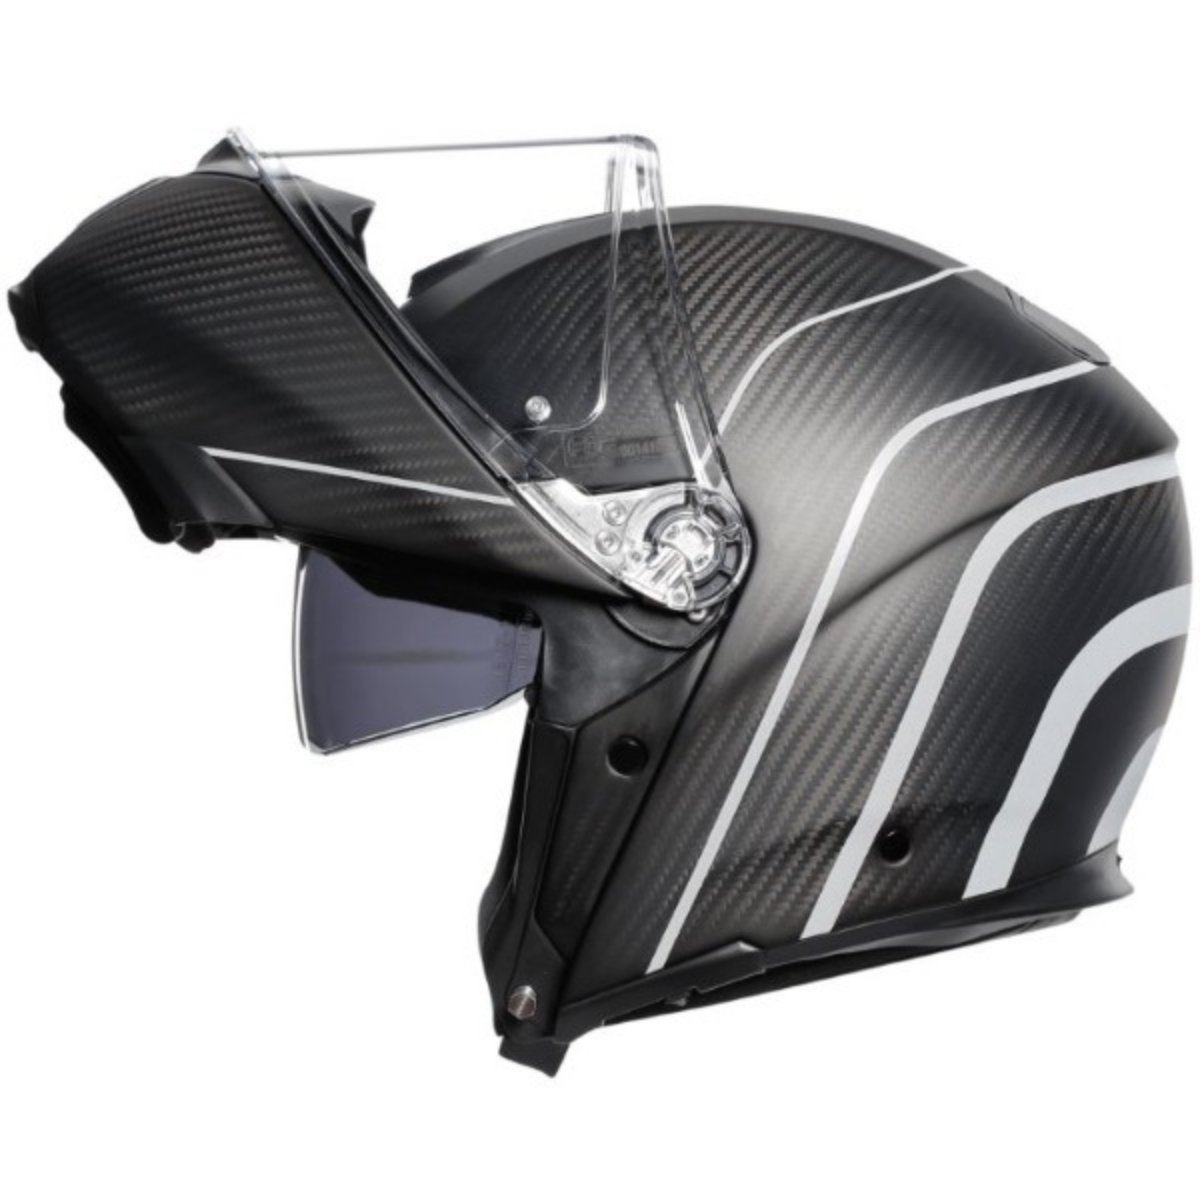 AGV Sports Flip Front Modular Motorcycle Helmet in Carbon Silver